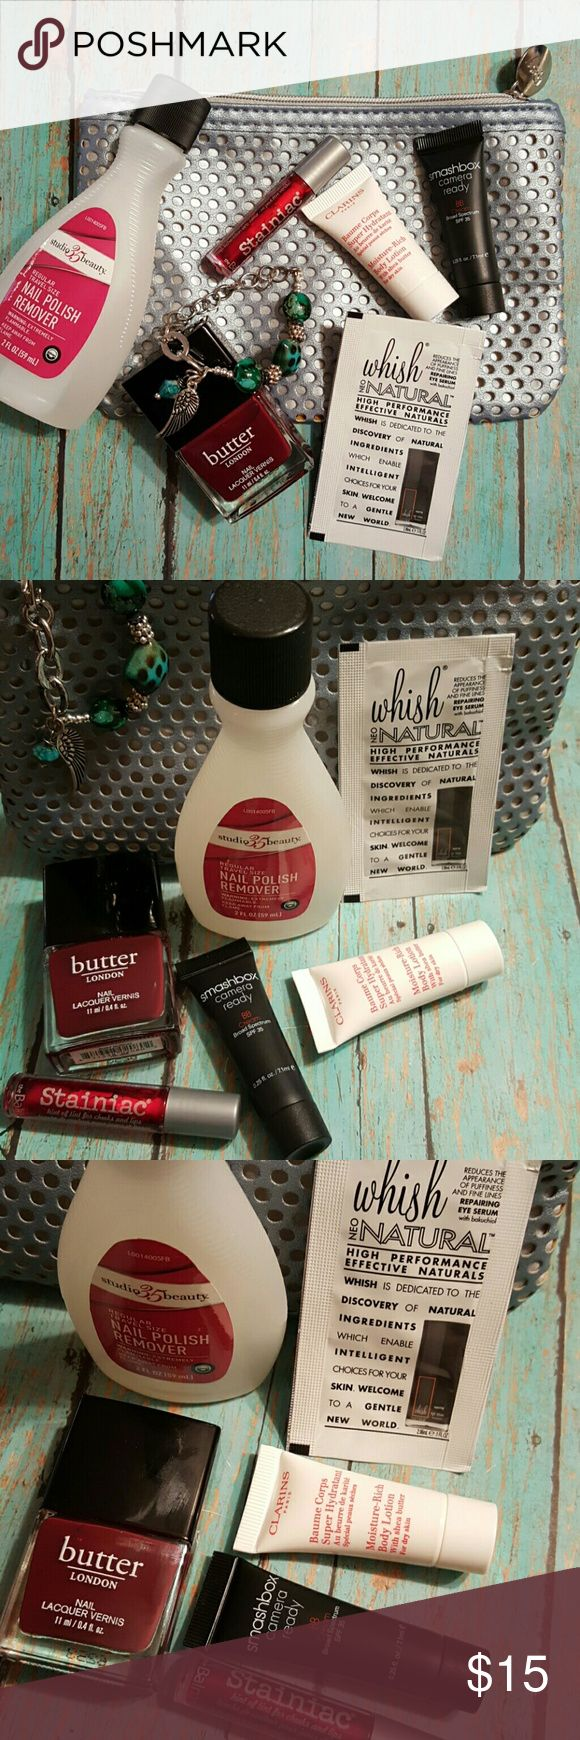 "Goody Bag Bundle Ipsy Cosmetic Bag (new), Gypsy Soul bracelet (new), Butter London Nail Lacquer in Ruby Murray (new), Clarins Moisture Rich Lotion sample (new), Smashbox Camera Ready sample in Light/Medium sample (new), theBalm Stainiac for lips & cheeks in ""beauty queen"" (new), Whisk eye serum sample (new), 2oz Nail Polish Remover (new). Makeup"